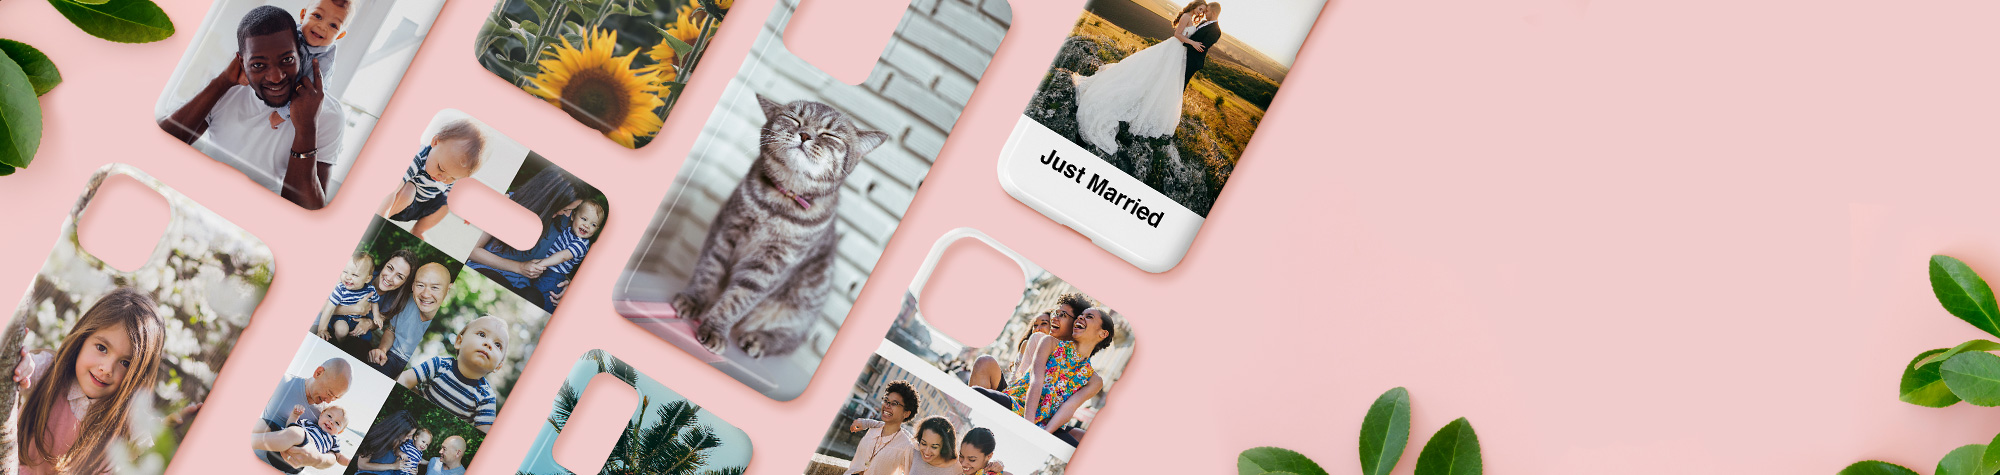 Mobile Phone Cases and Covers Image